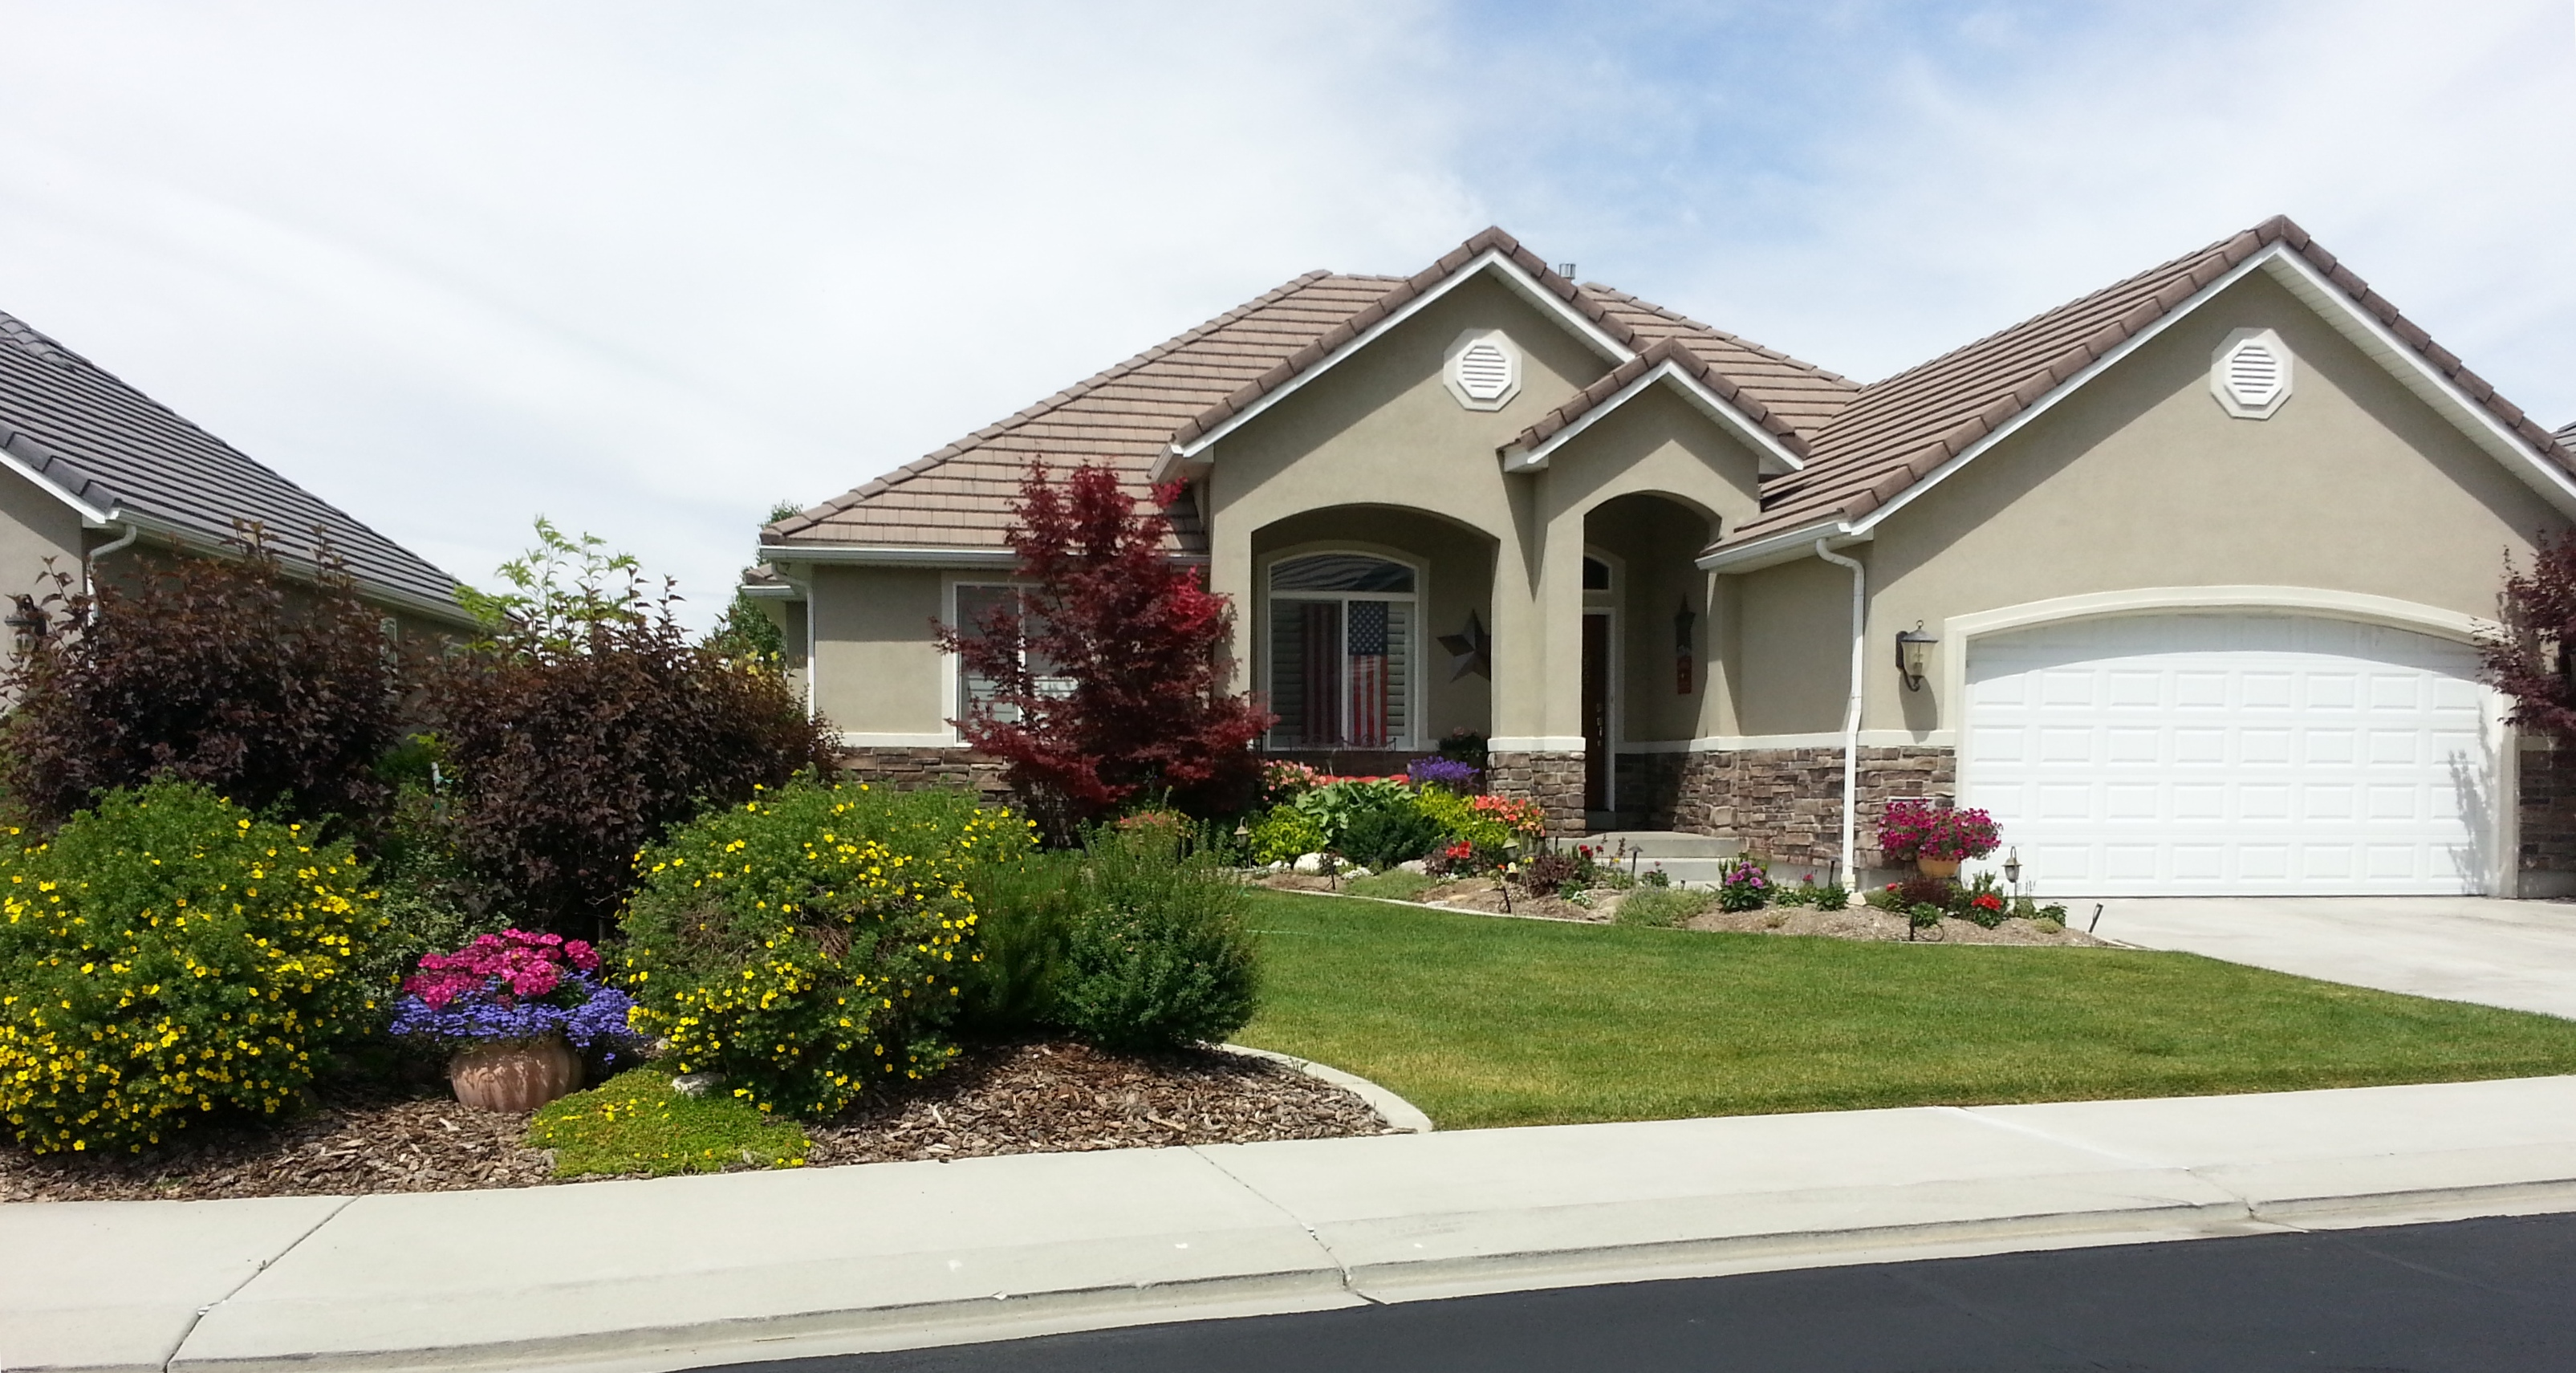 The Rodabough Family - Yard of the Month - June 2013